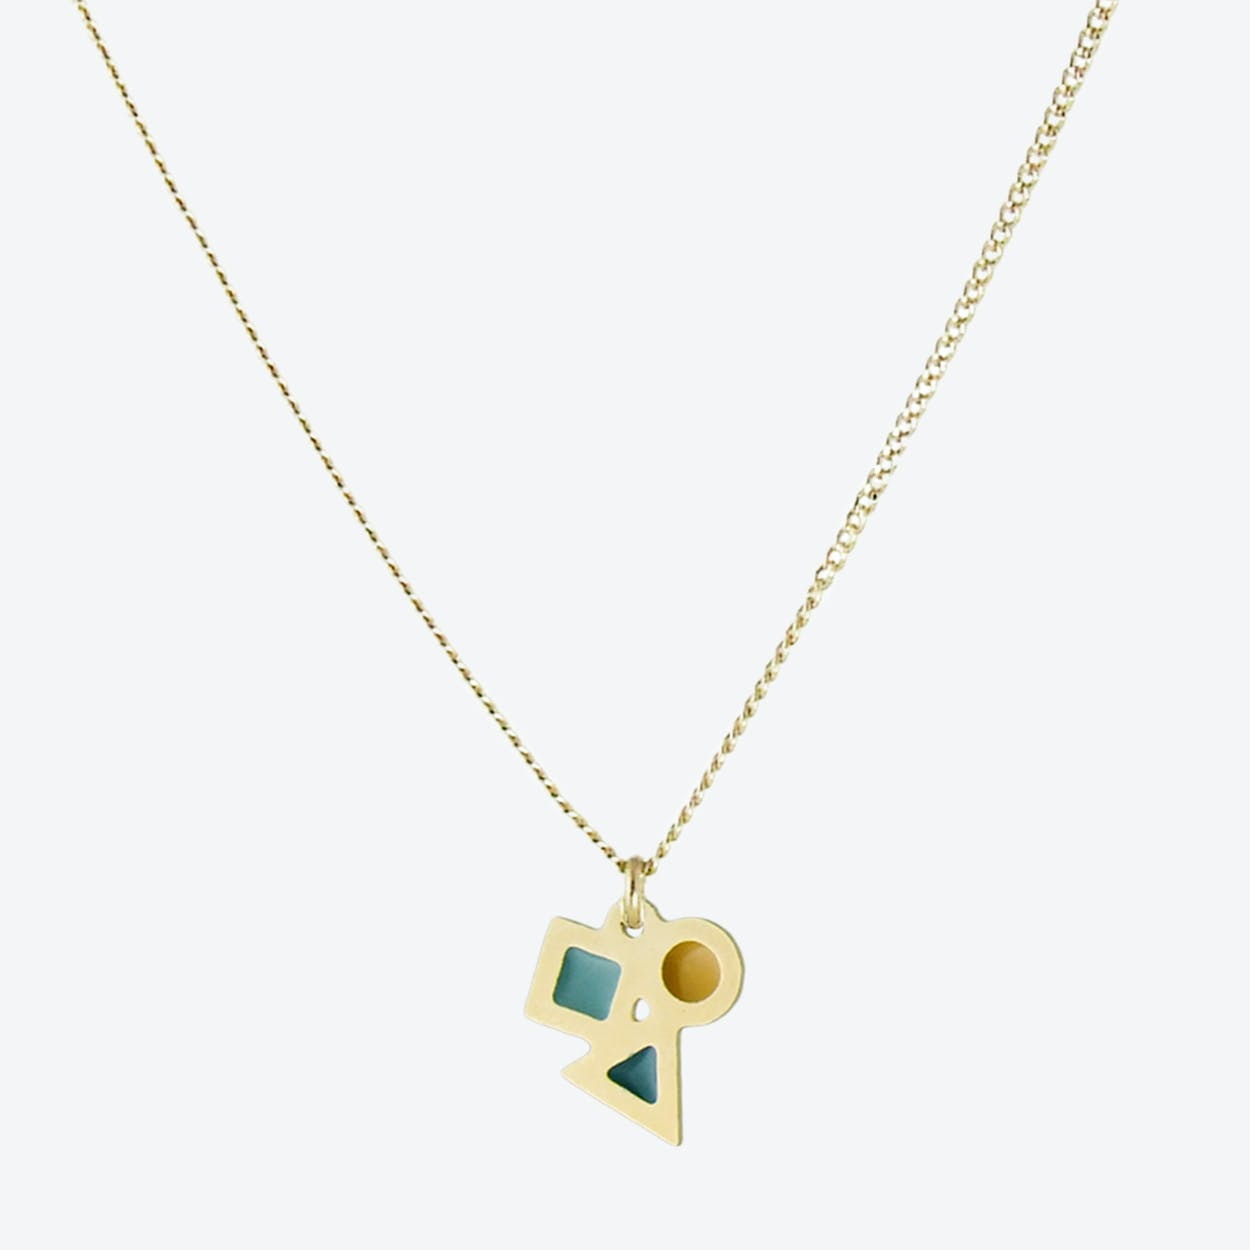 Tiny Geometric Pendant Necklace in Emerald, Duck Egg, and Mustard